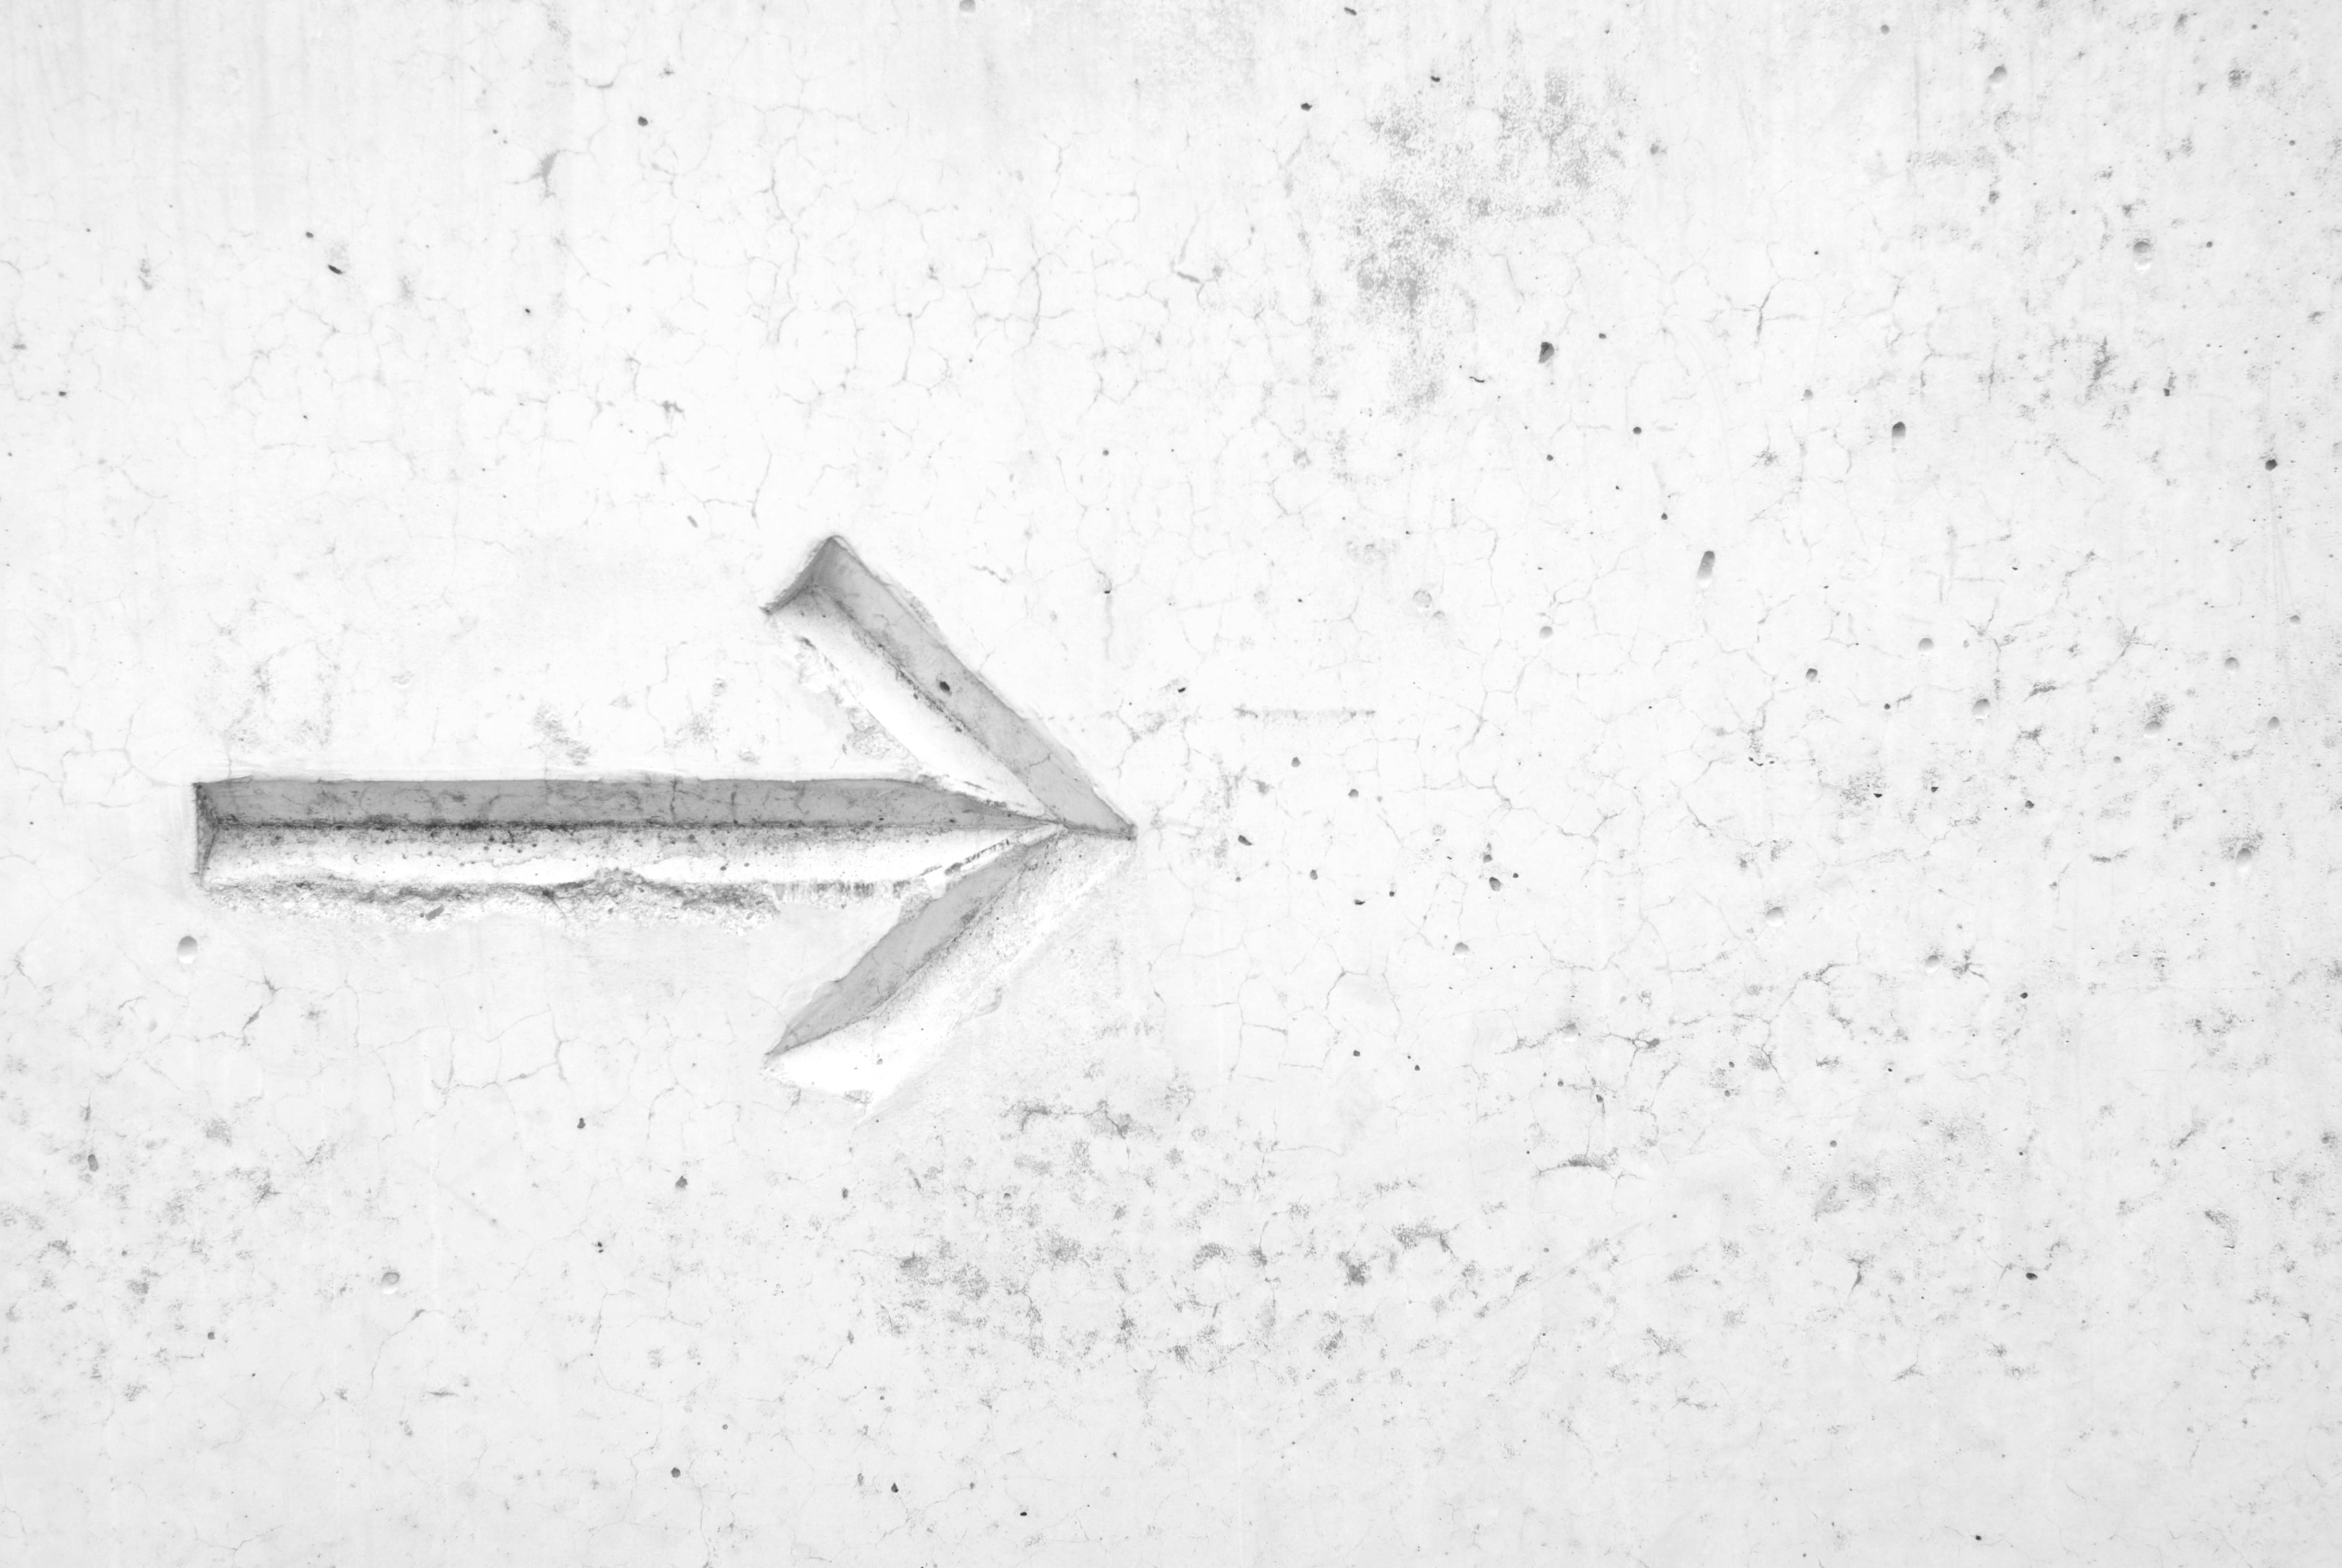 A direction arrow etched in a white wall